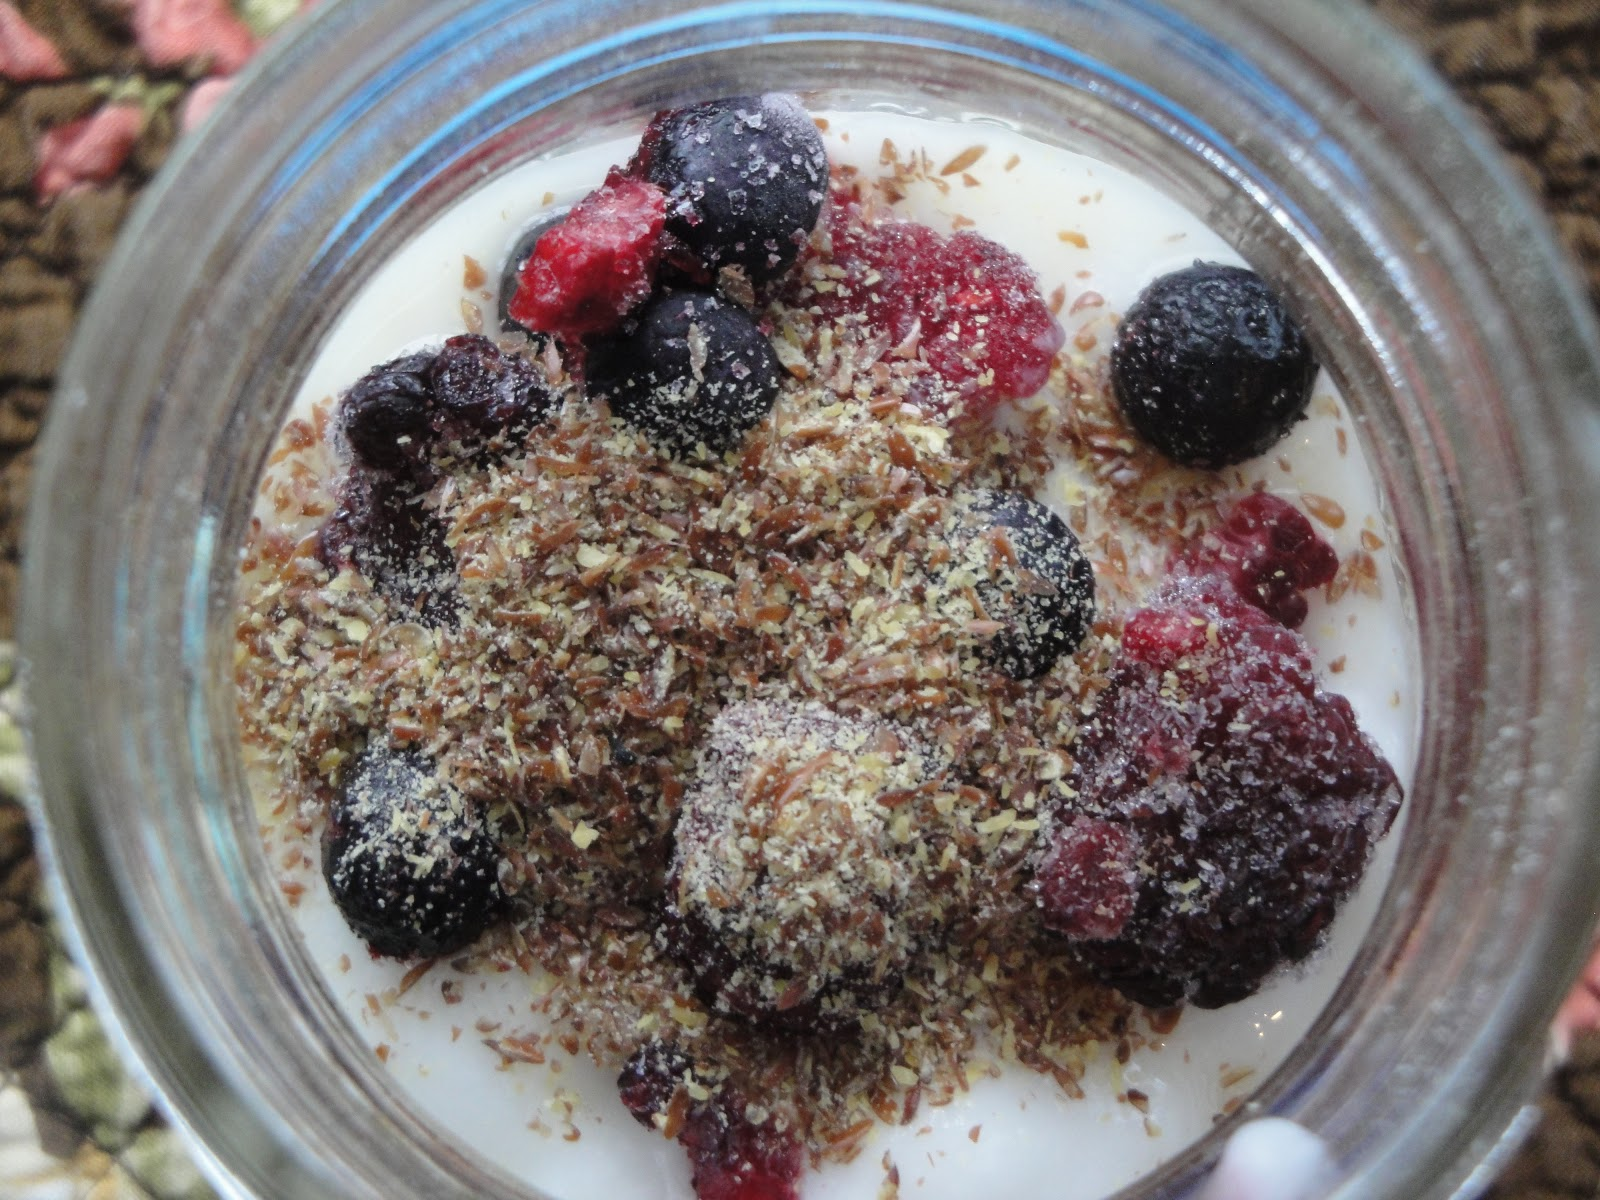 dairy free and egg free overnight oats